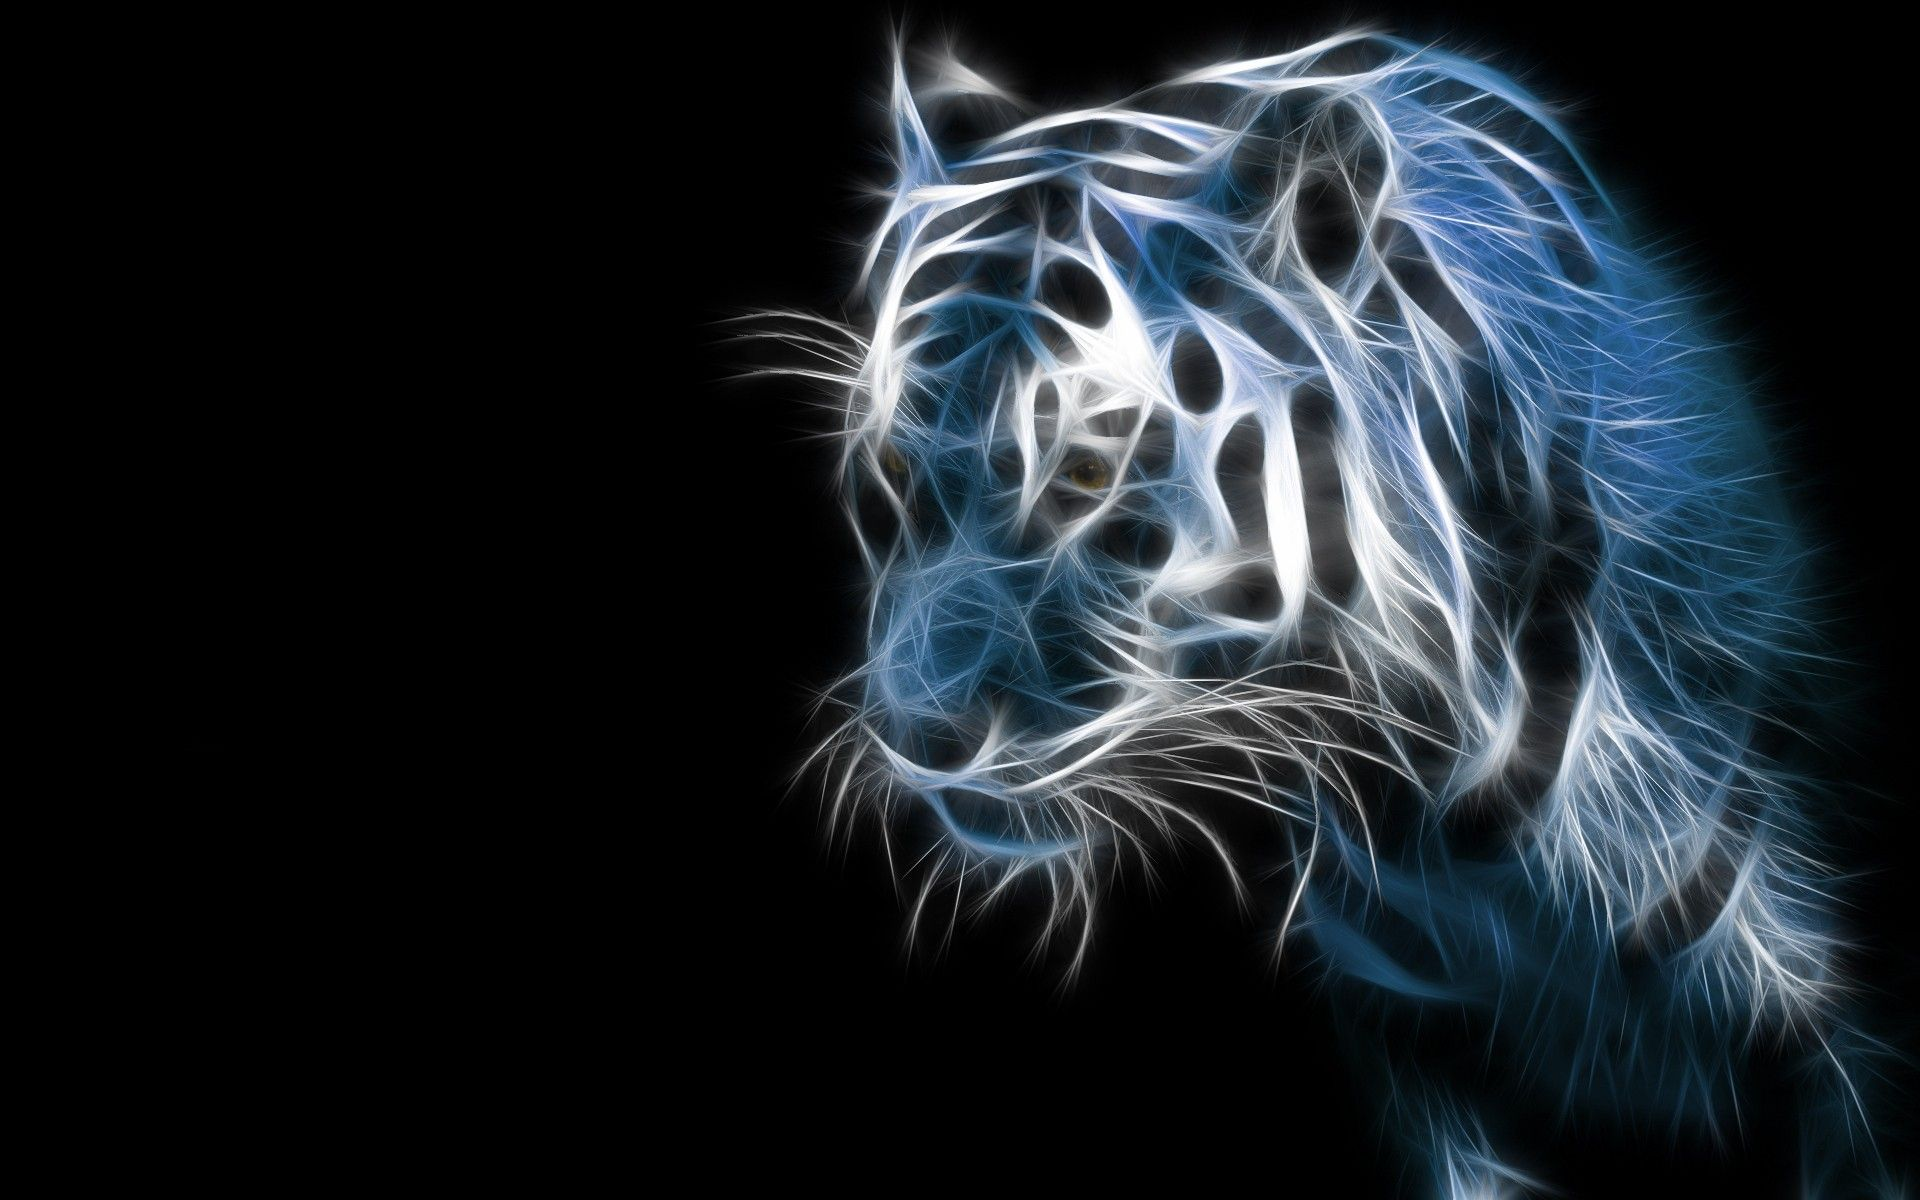 Wallpaper Hd For Pc Collection For Free Download Hd Wallpapers For Laptop Tiger Wallpaper Animal Wallpaper